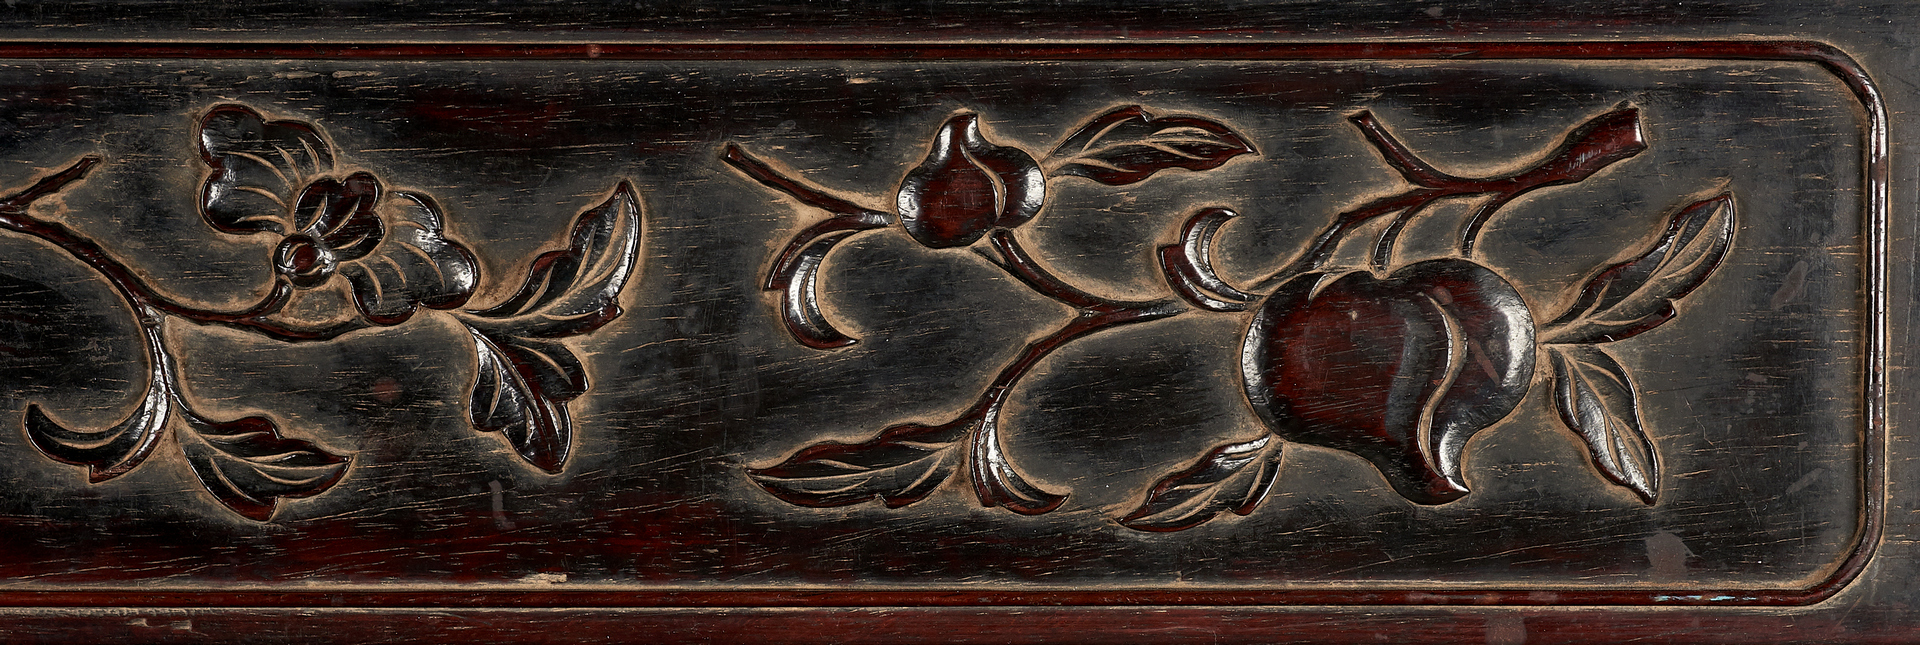 Lot 994: Asian Carved Frame and Watercolors plus 3 Hardwood Plaques